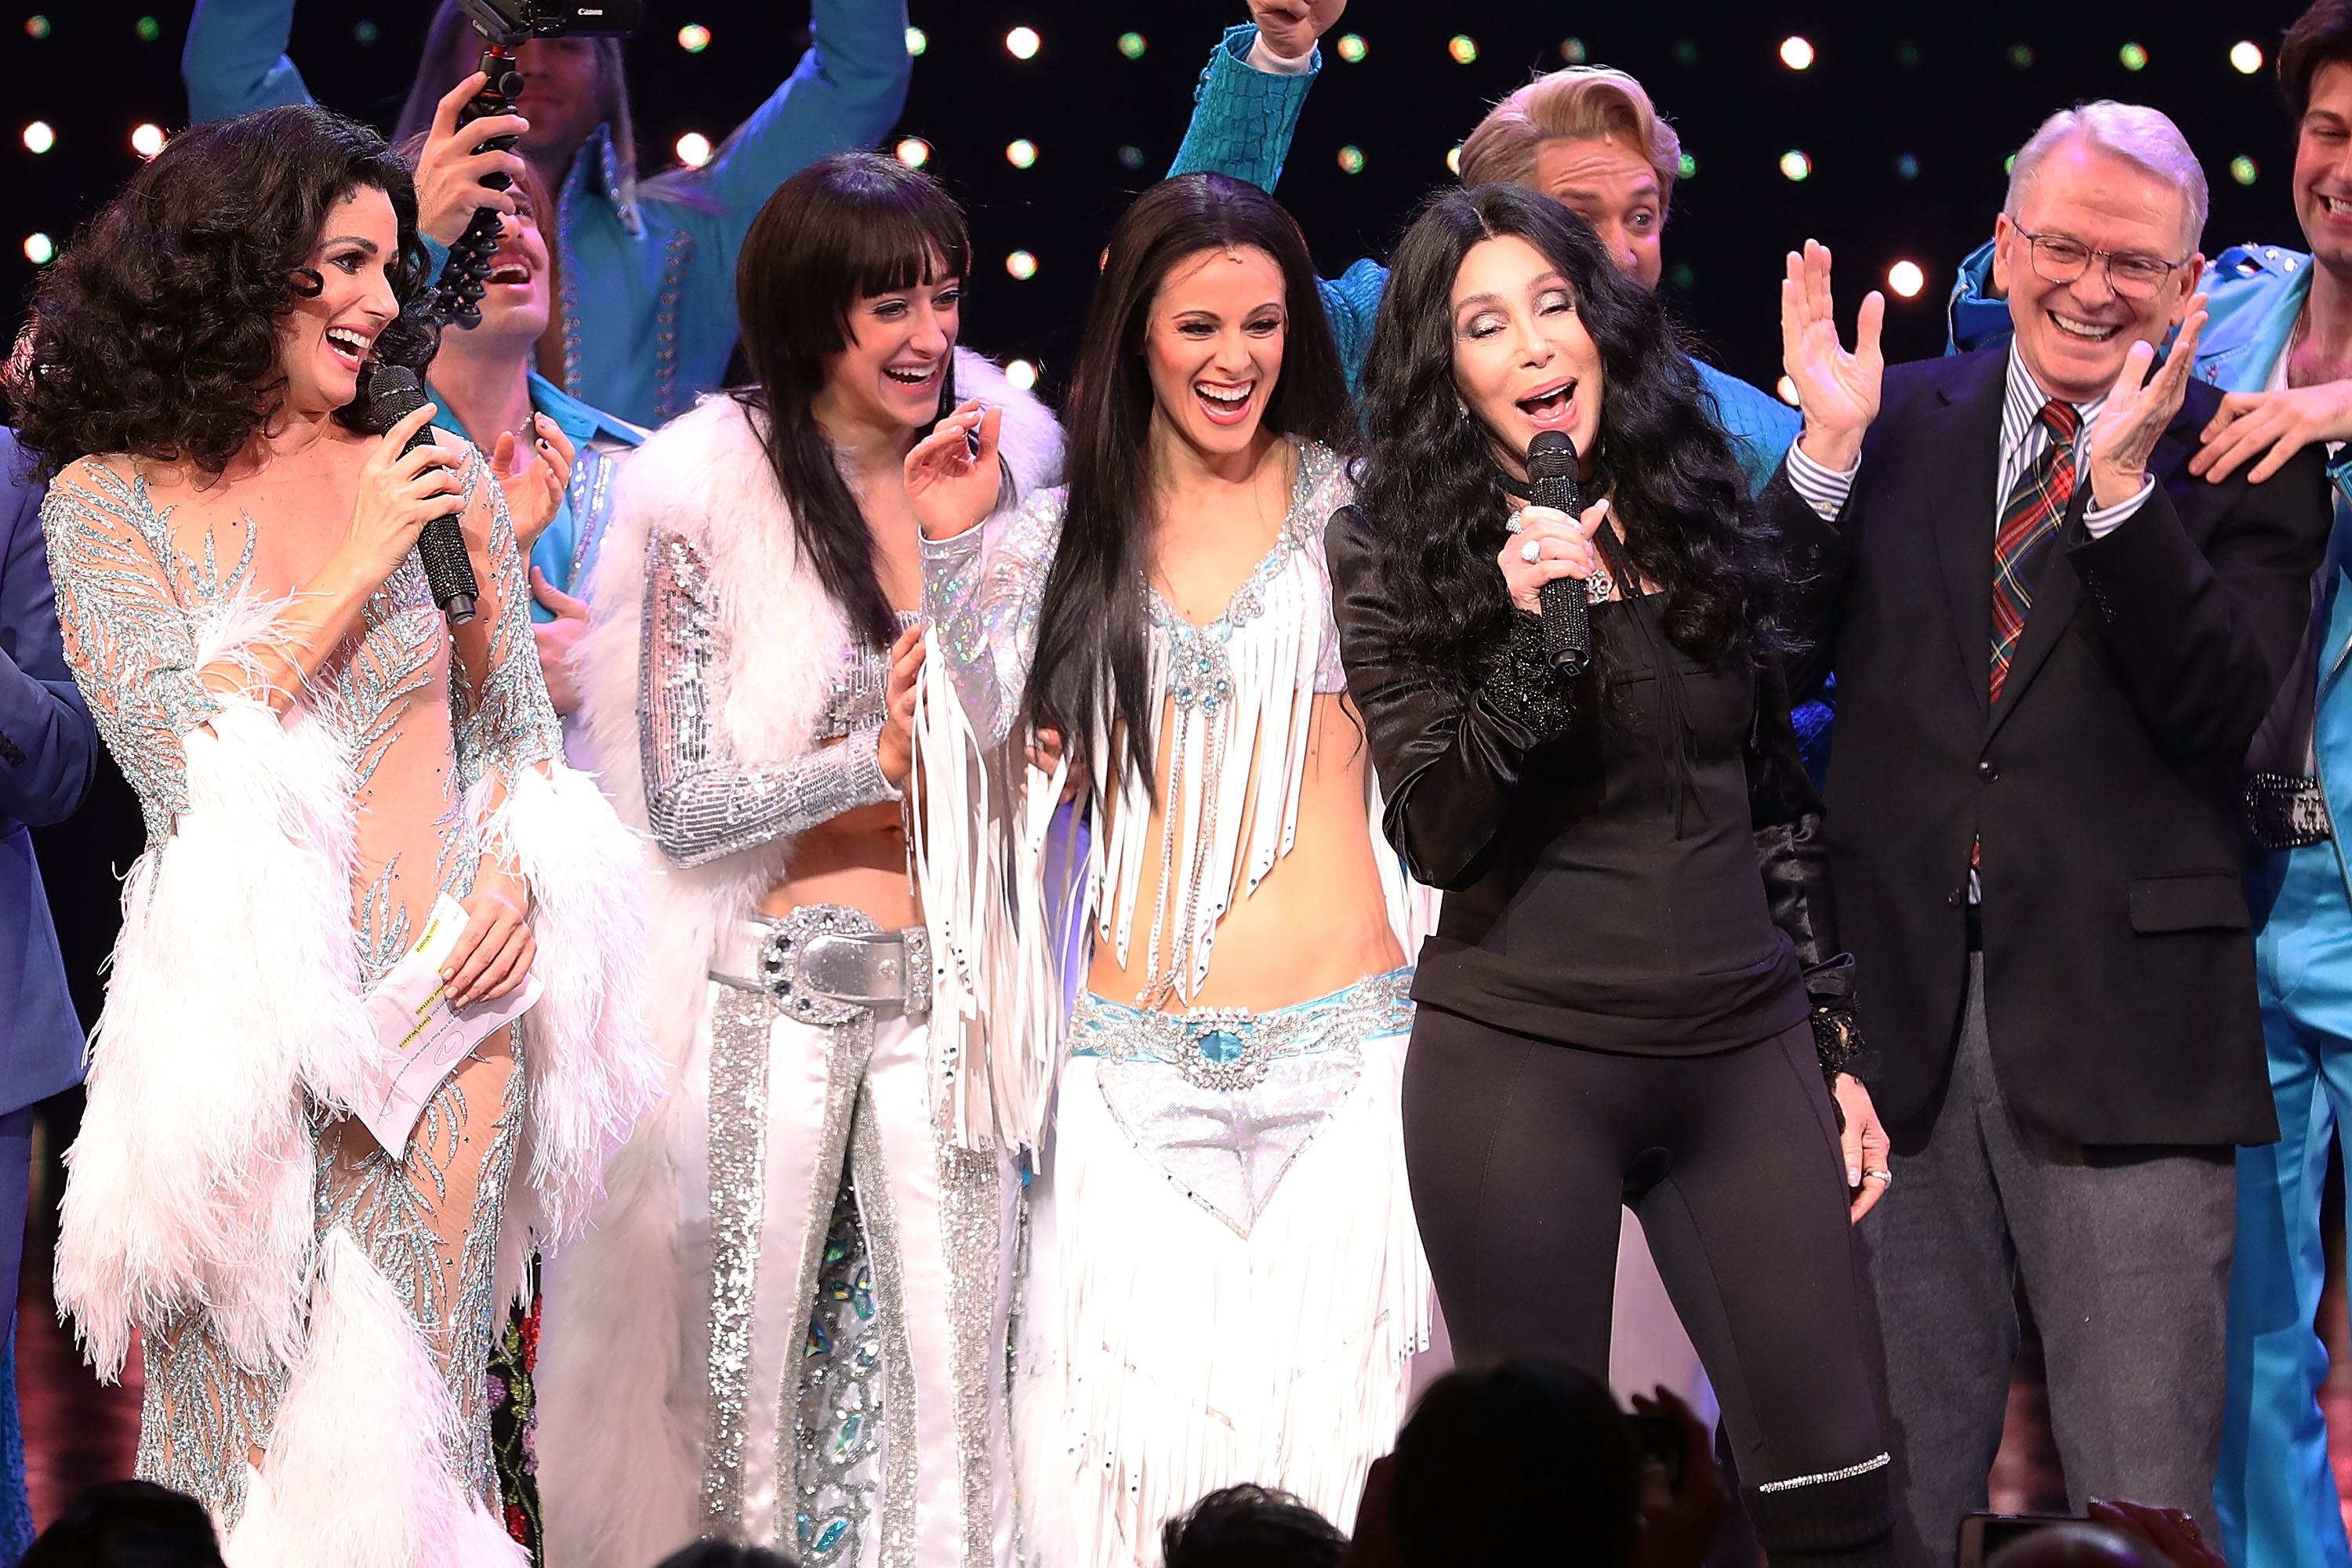 Cher Through The Years - After previews in Chicago, The Cher Show moved to Broadway with three actresses playing Cher in three stages of her life: Stephanie J. Block , Teal Wicks and Micaela Diamond .